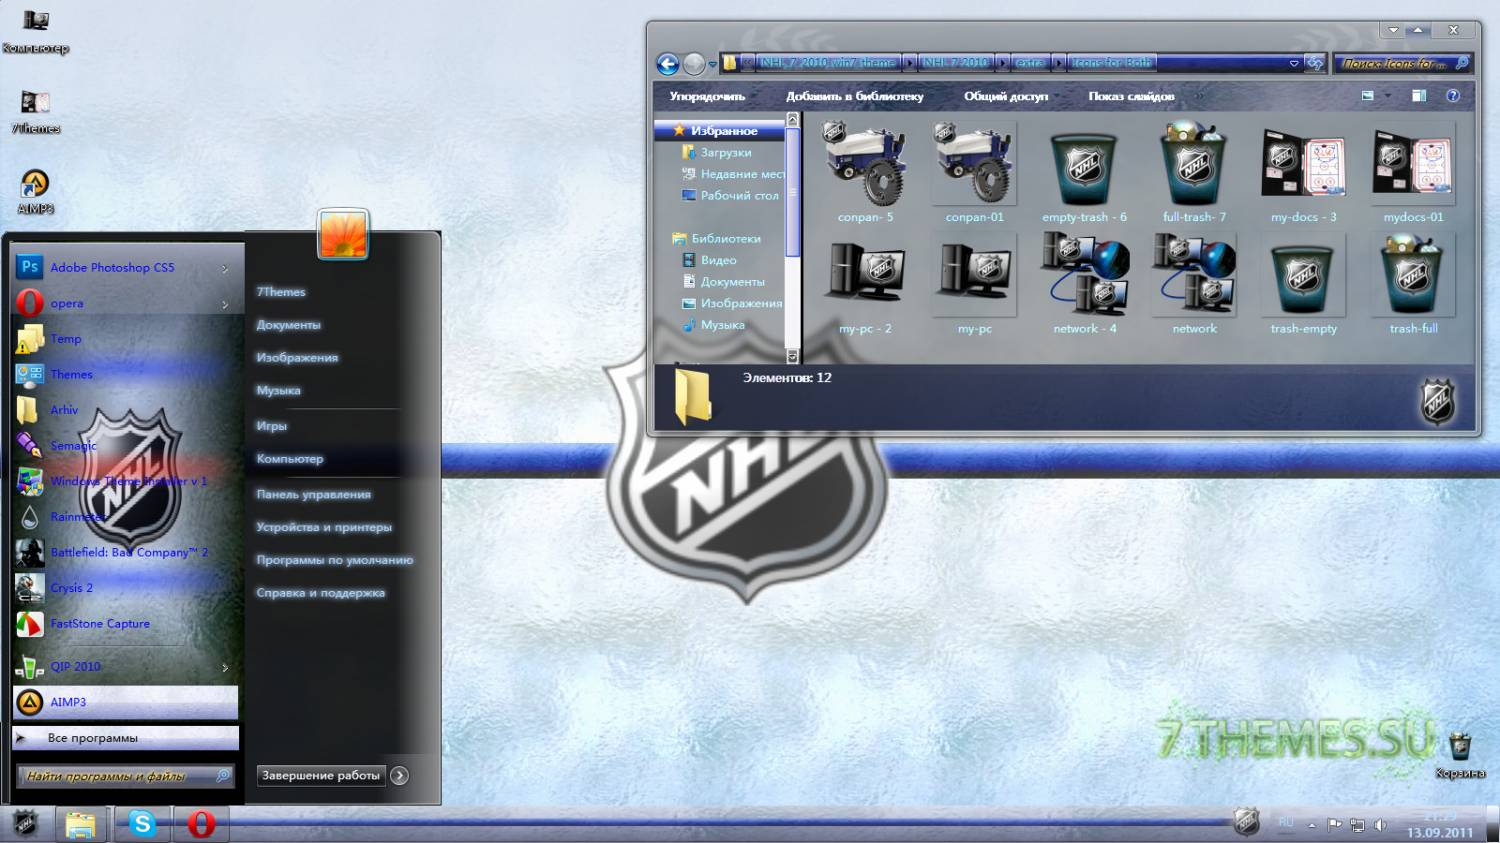 Nhl 17 pc download reworked games.